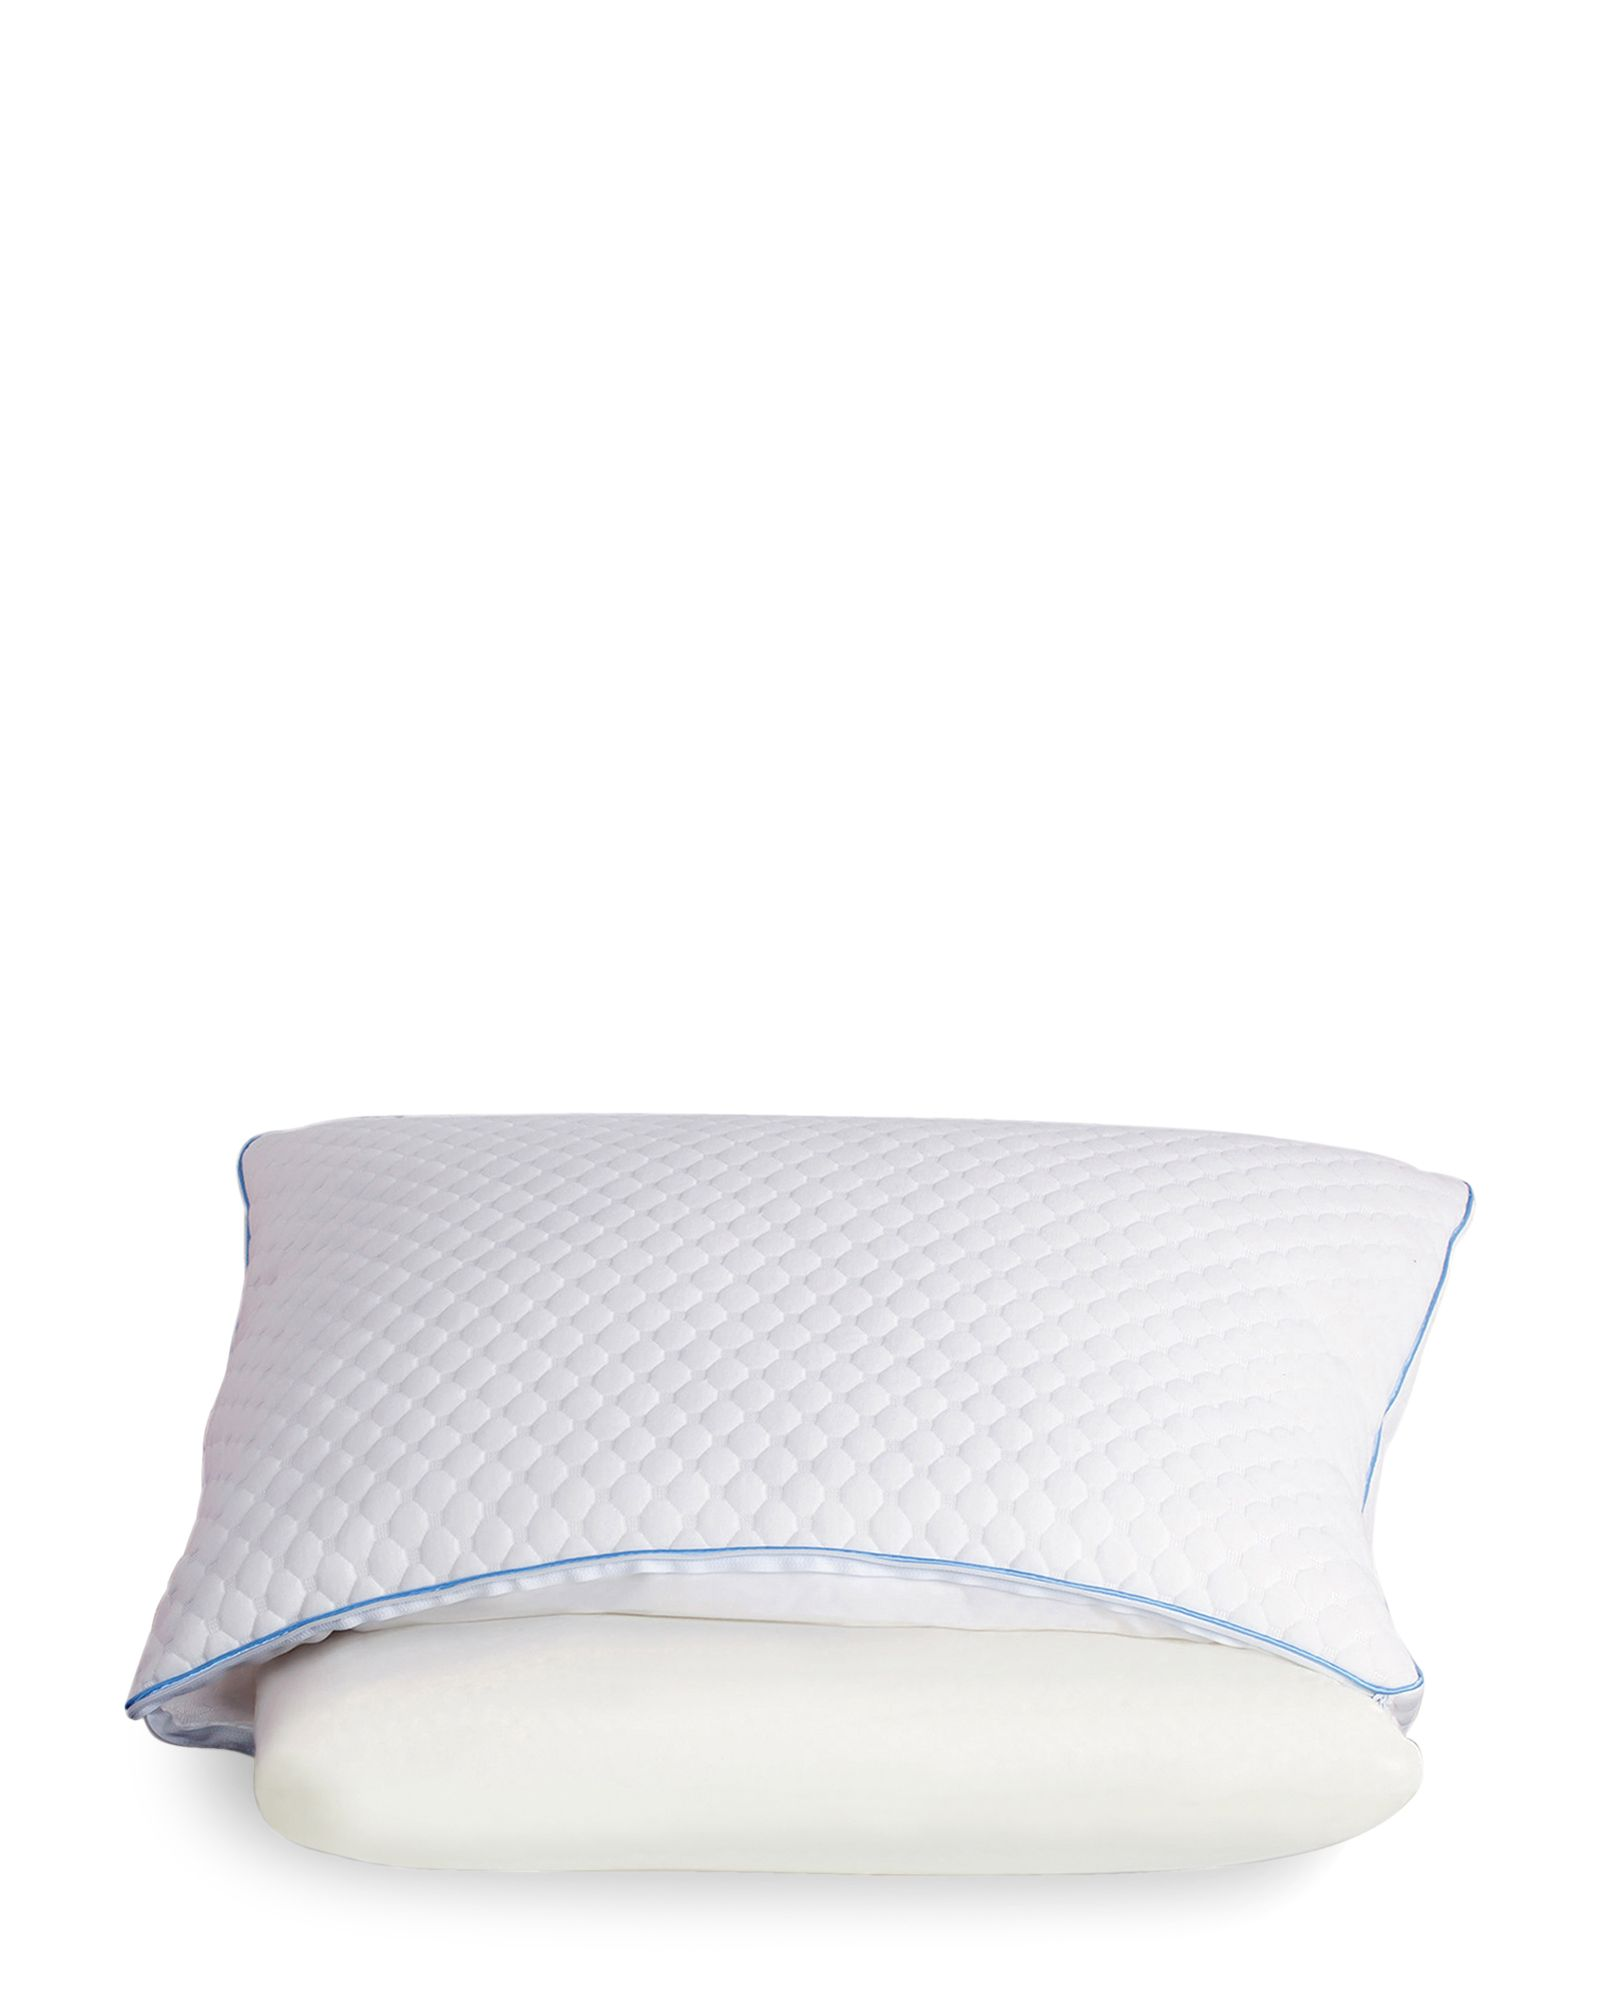 Standard Bed Pillows Half Half Standard Bed Pillow Home Garden Bed Pillows